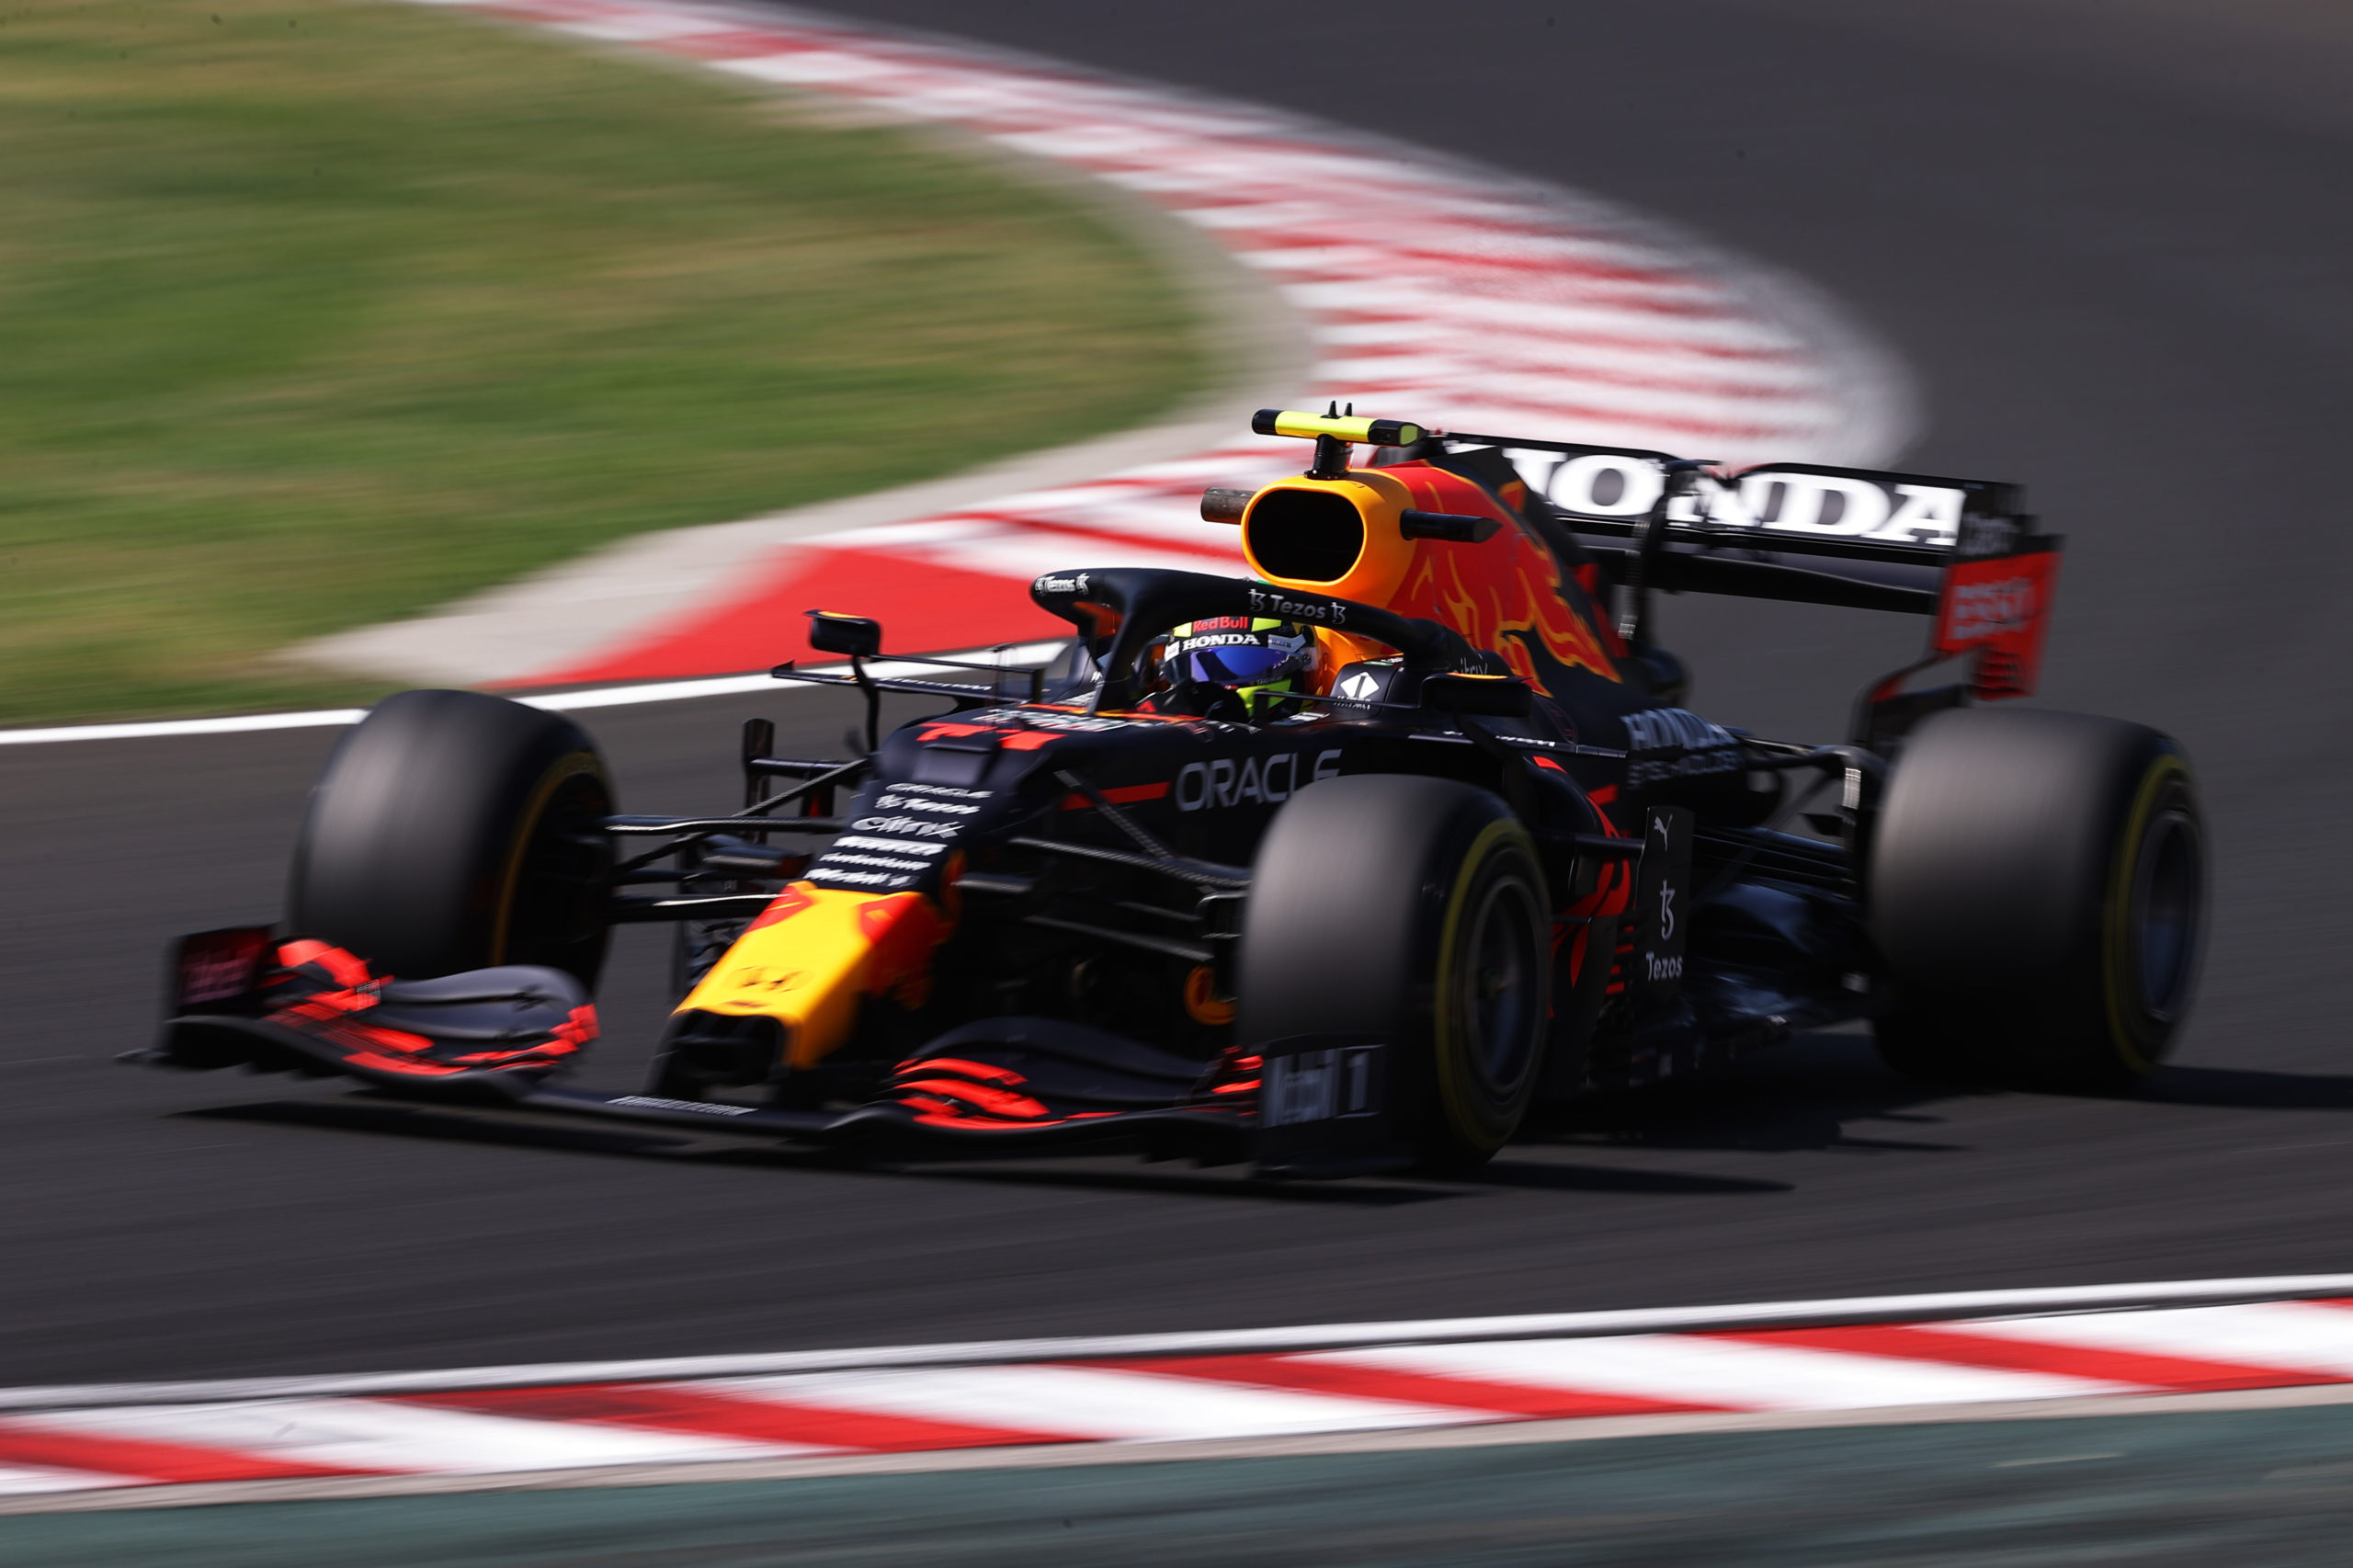 BUDAPEST, HUNGARY - JULY 30: Sergio Perez of Mexico driving the (11) Red Bull Racing RB16B Honda during practice ahead of the F1 Grand Prix of Hungary at Hungaroring on July 30, 2021 in Budapest, Hungary. (Photo by Lars Baron/Getty Images) // Getty Images / Red Bull Content Pool  // SI202107300257 // Usage for editorial use only //